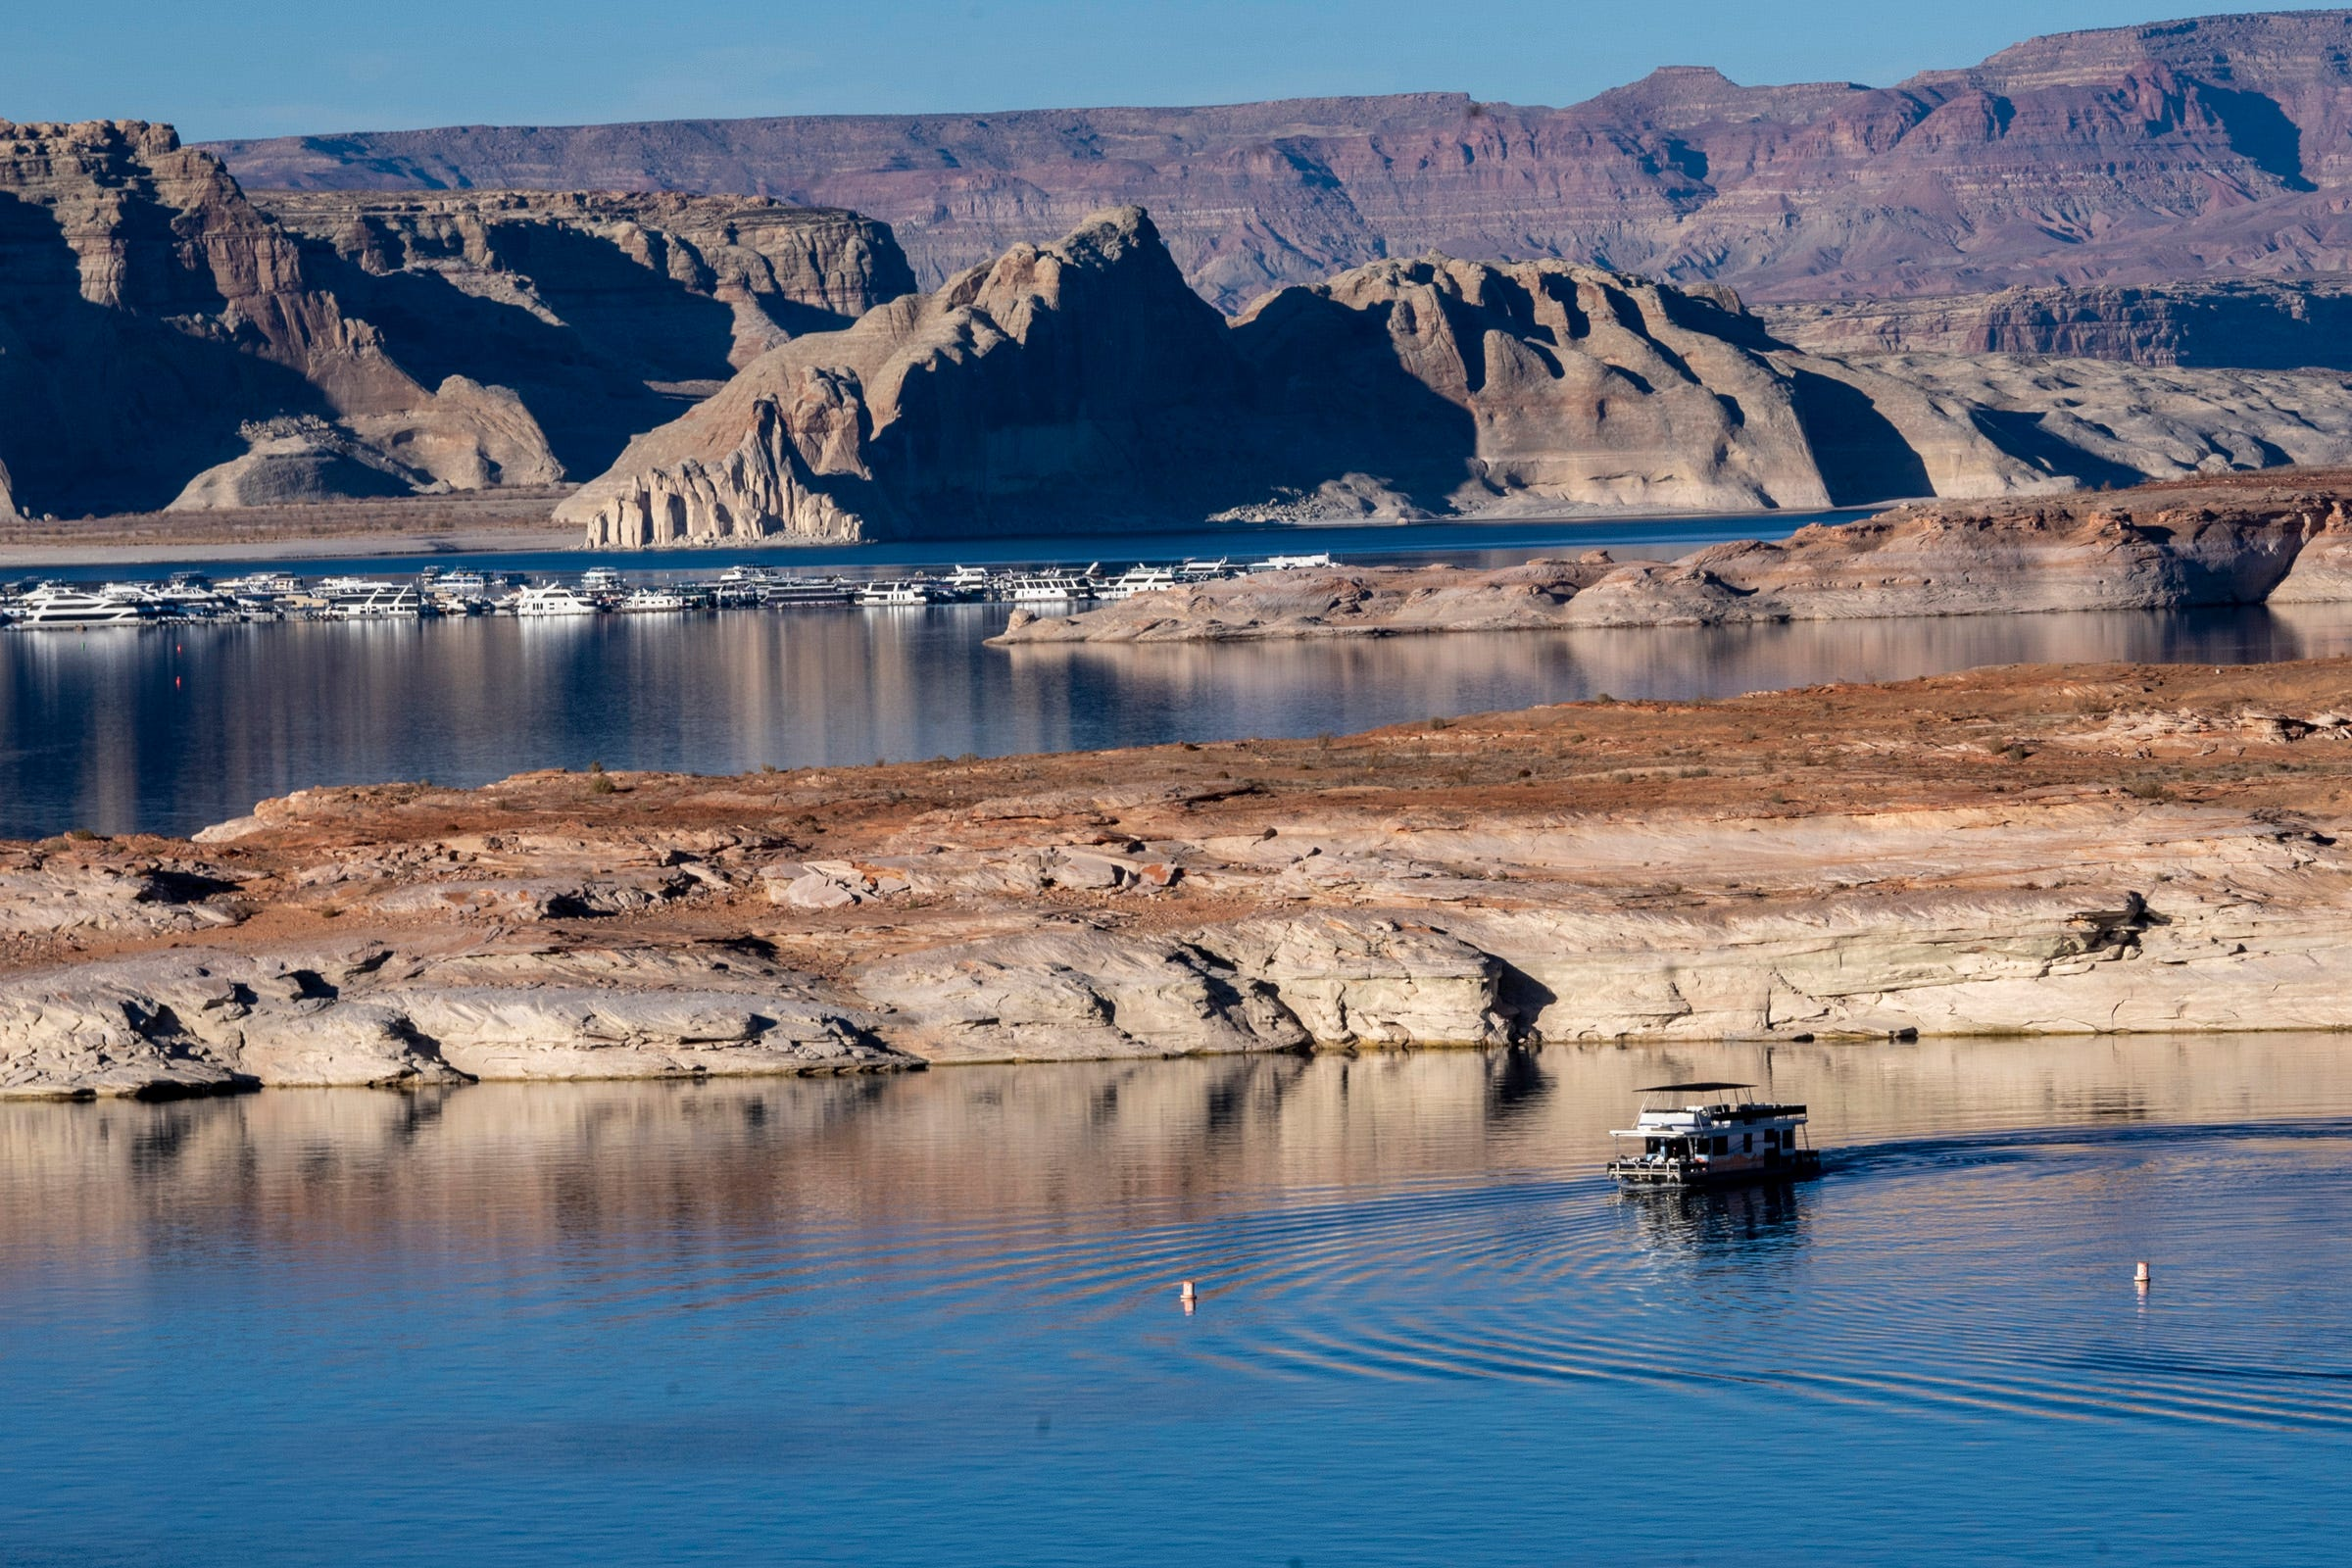 The water level of Lake Powell, one of the two largest reservoirs on the Colorado River, has declined over the past year. In November, the reservoir was at 44% of its full capacity.